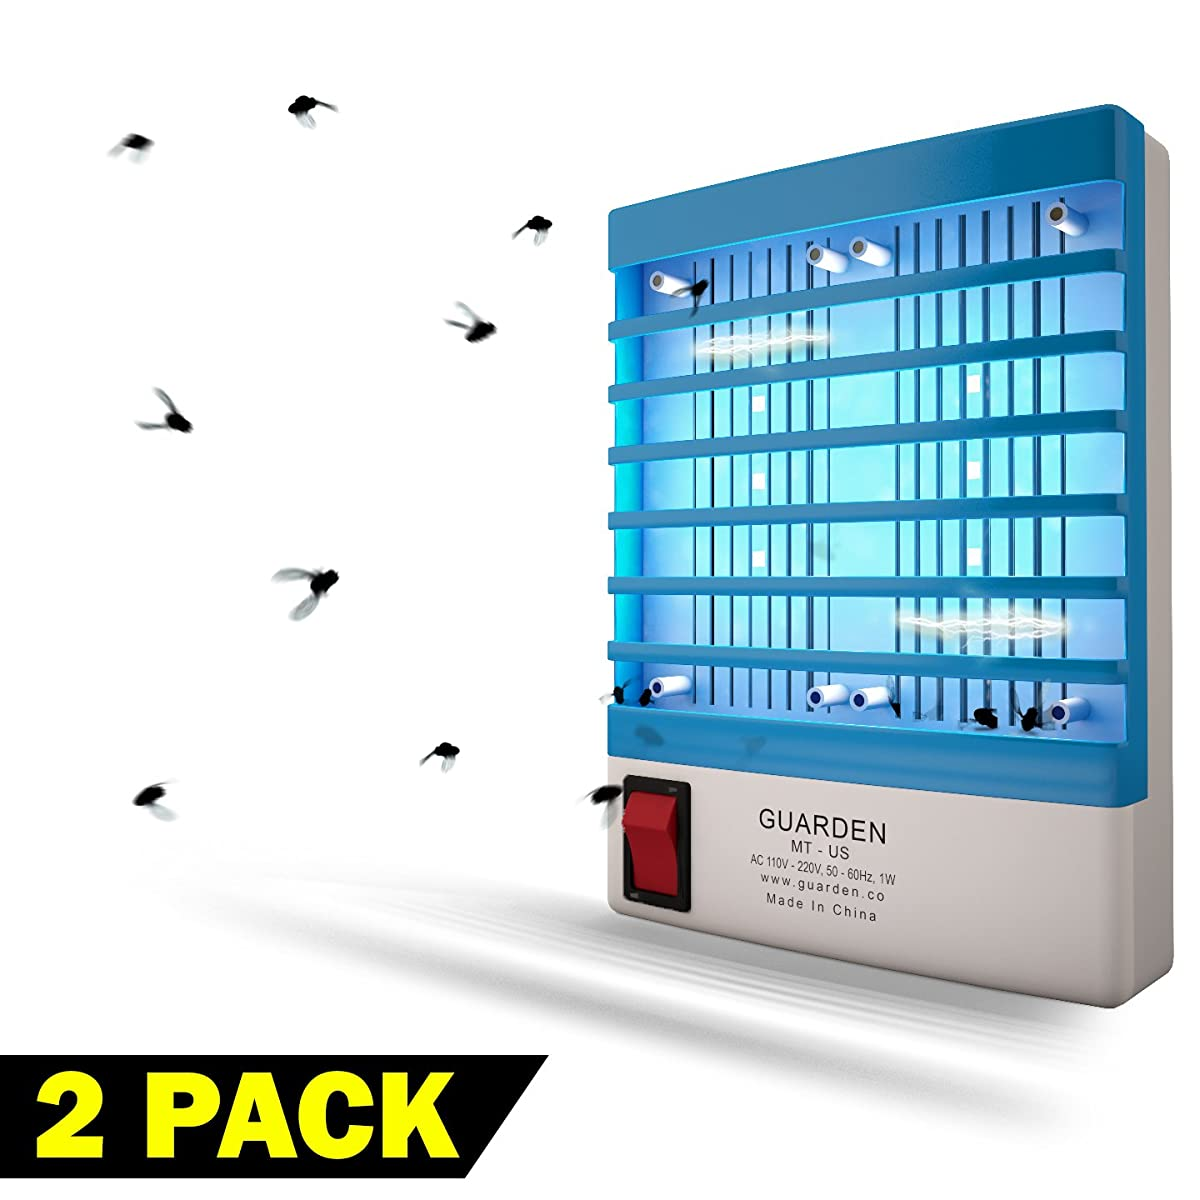 Indoor Gnat Killer Mosquito Zappers - Free your Home Of Gnats and Mosquitoes Fast - Non Toxic Electric Zapping Bug Control Lamp - Zap Bugs and Flying Pests -Extreme Strength Kill Plug Trap